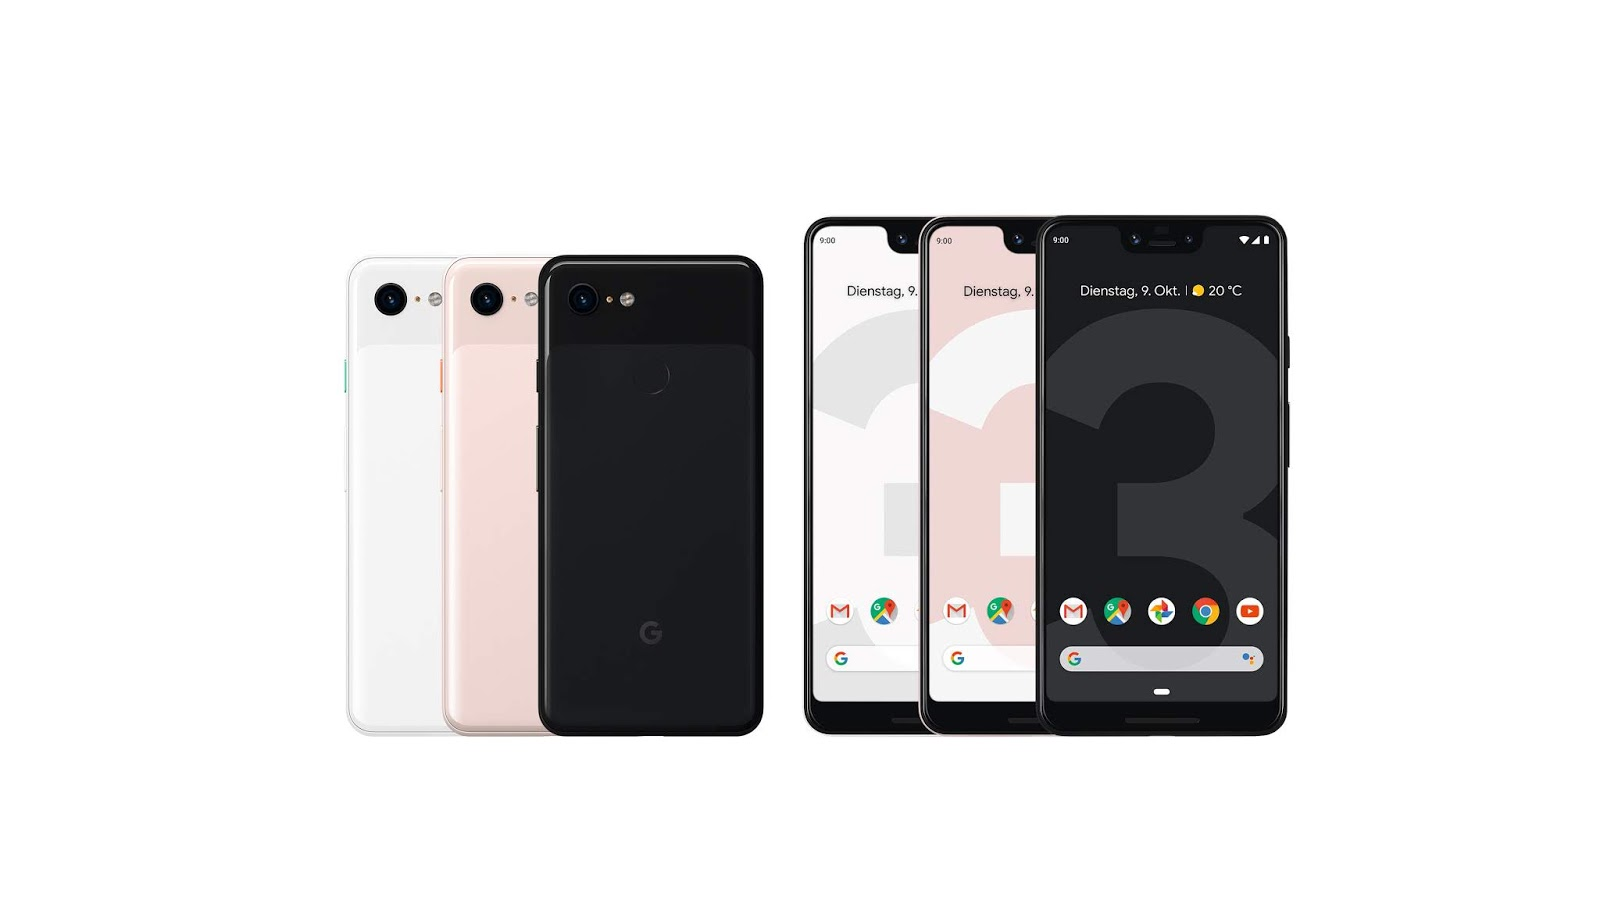 pixel 3 google launcht sein neues flaggschiff smartphone. Black Bedroom Furniture Sets. Home Design Ideas